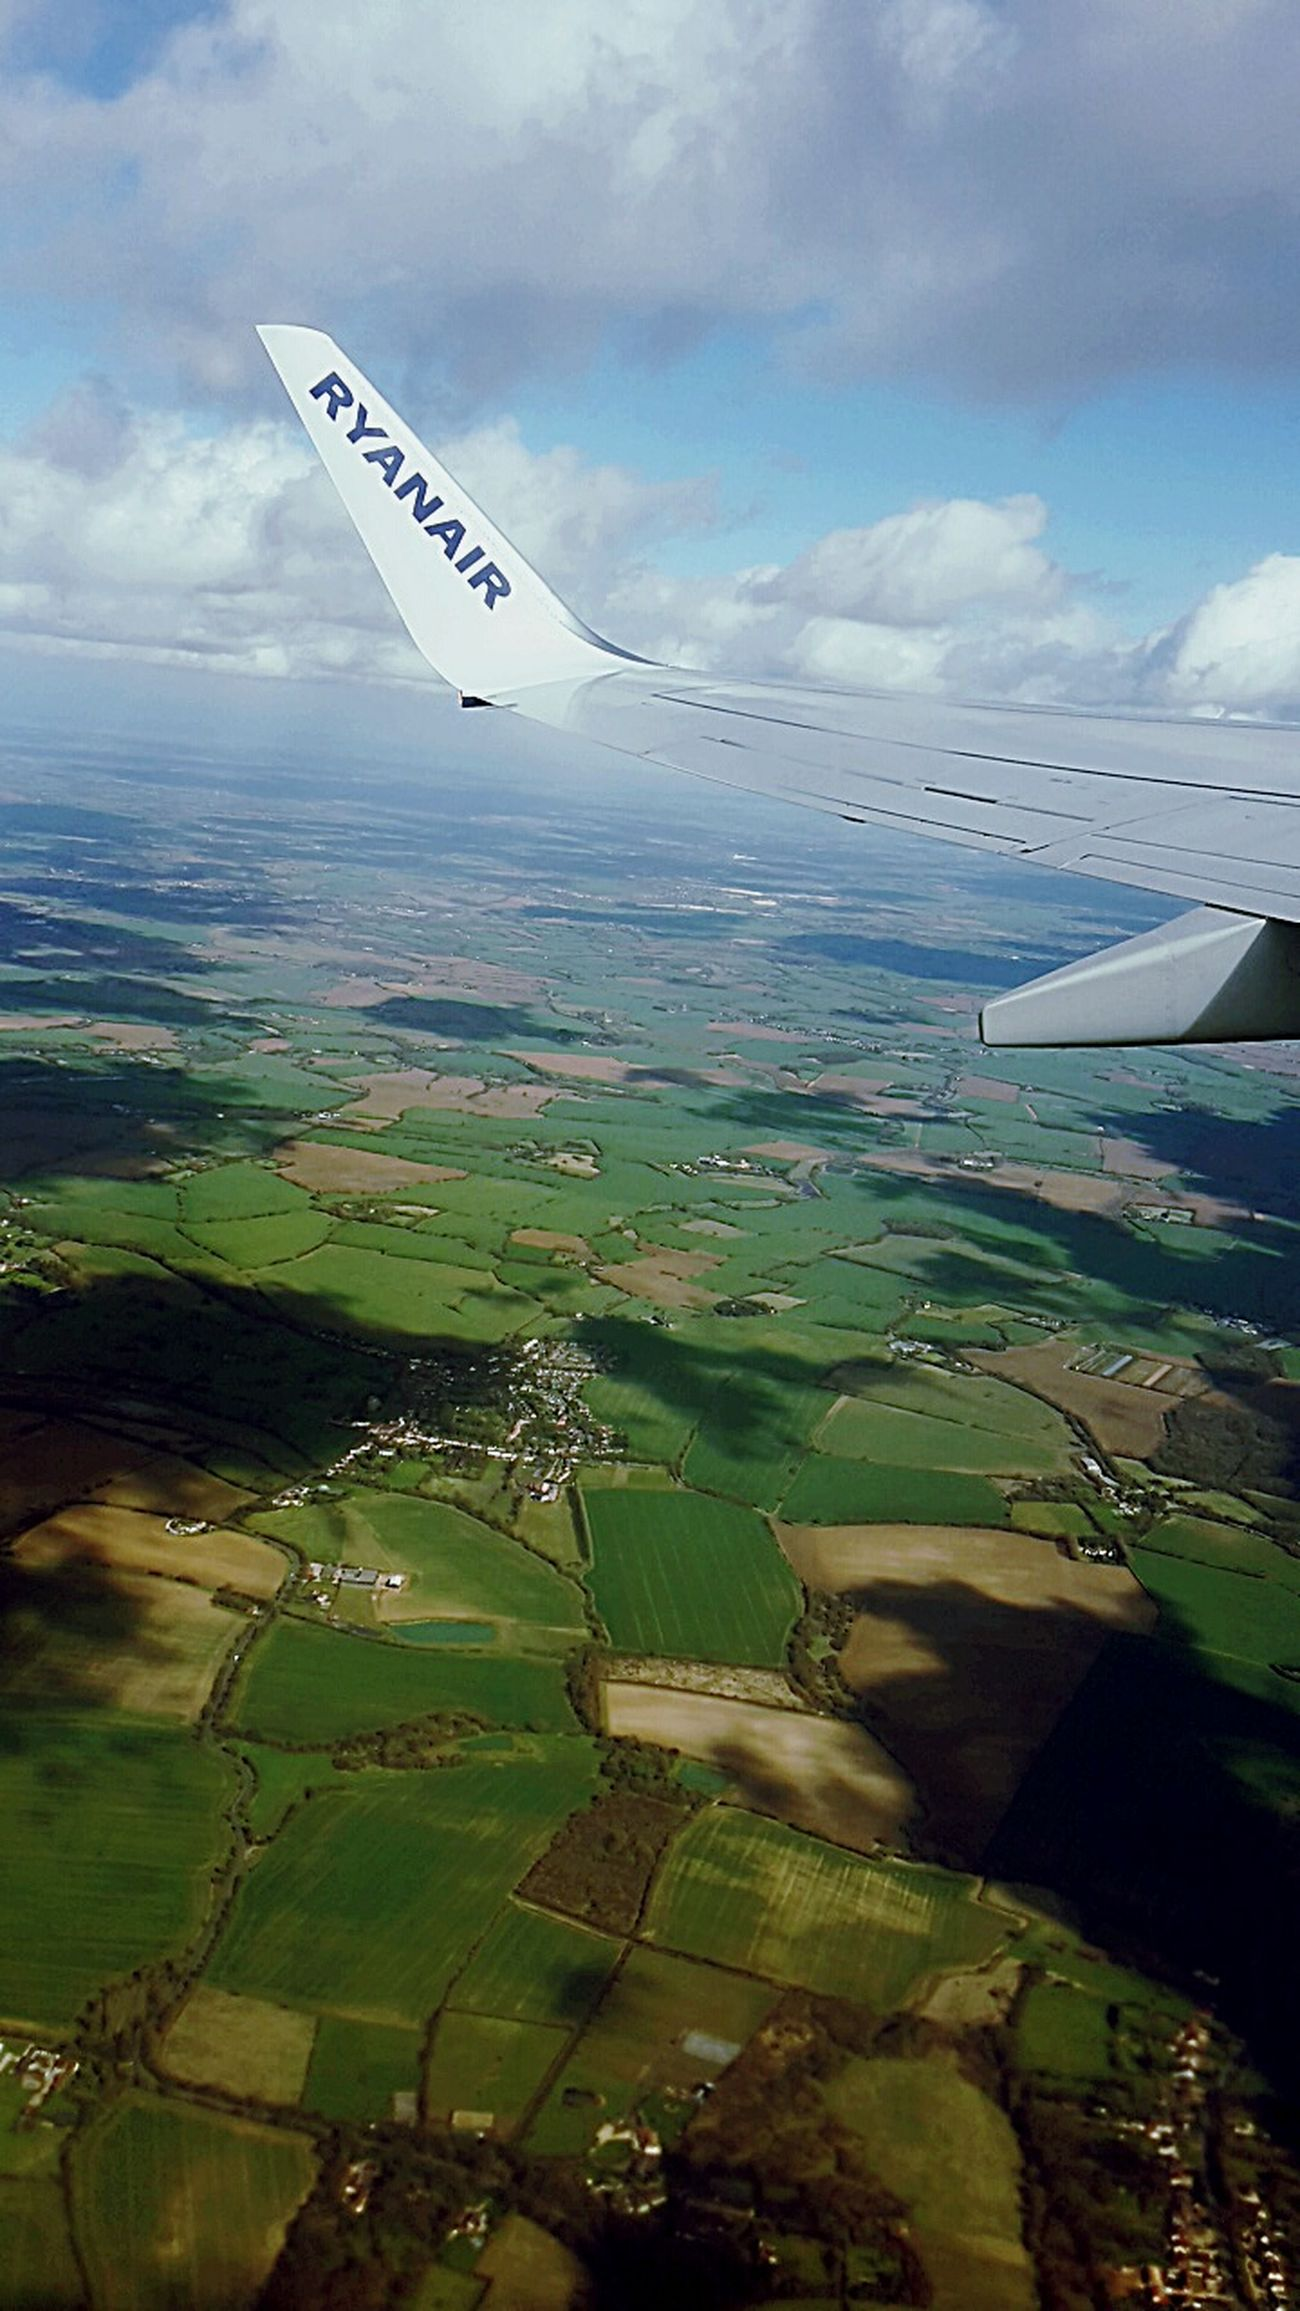 Somewhereinengland Ryanair Thatview Enjoying Life Taking Photos Firstflight Hello World Marchphotoaday March Way Back Home